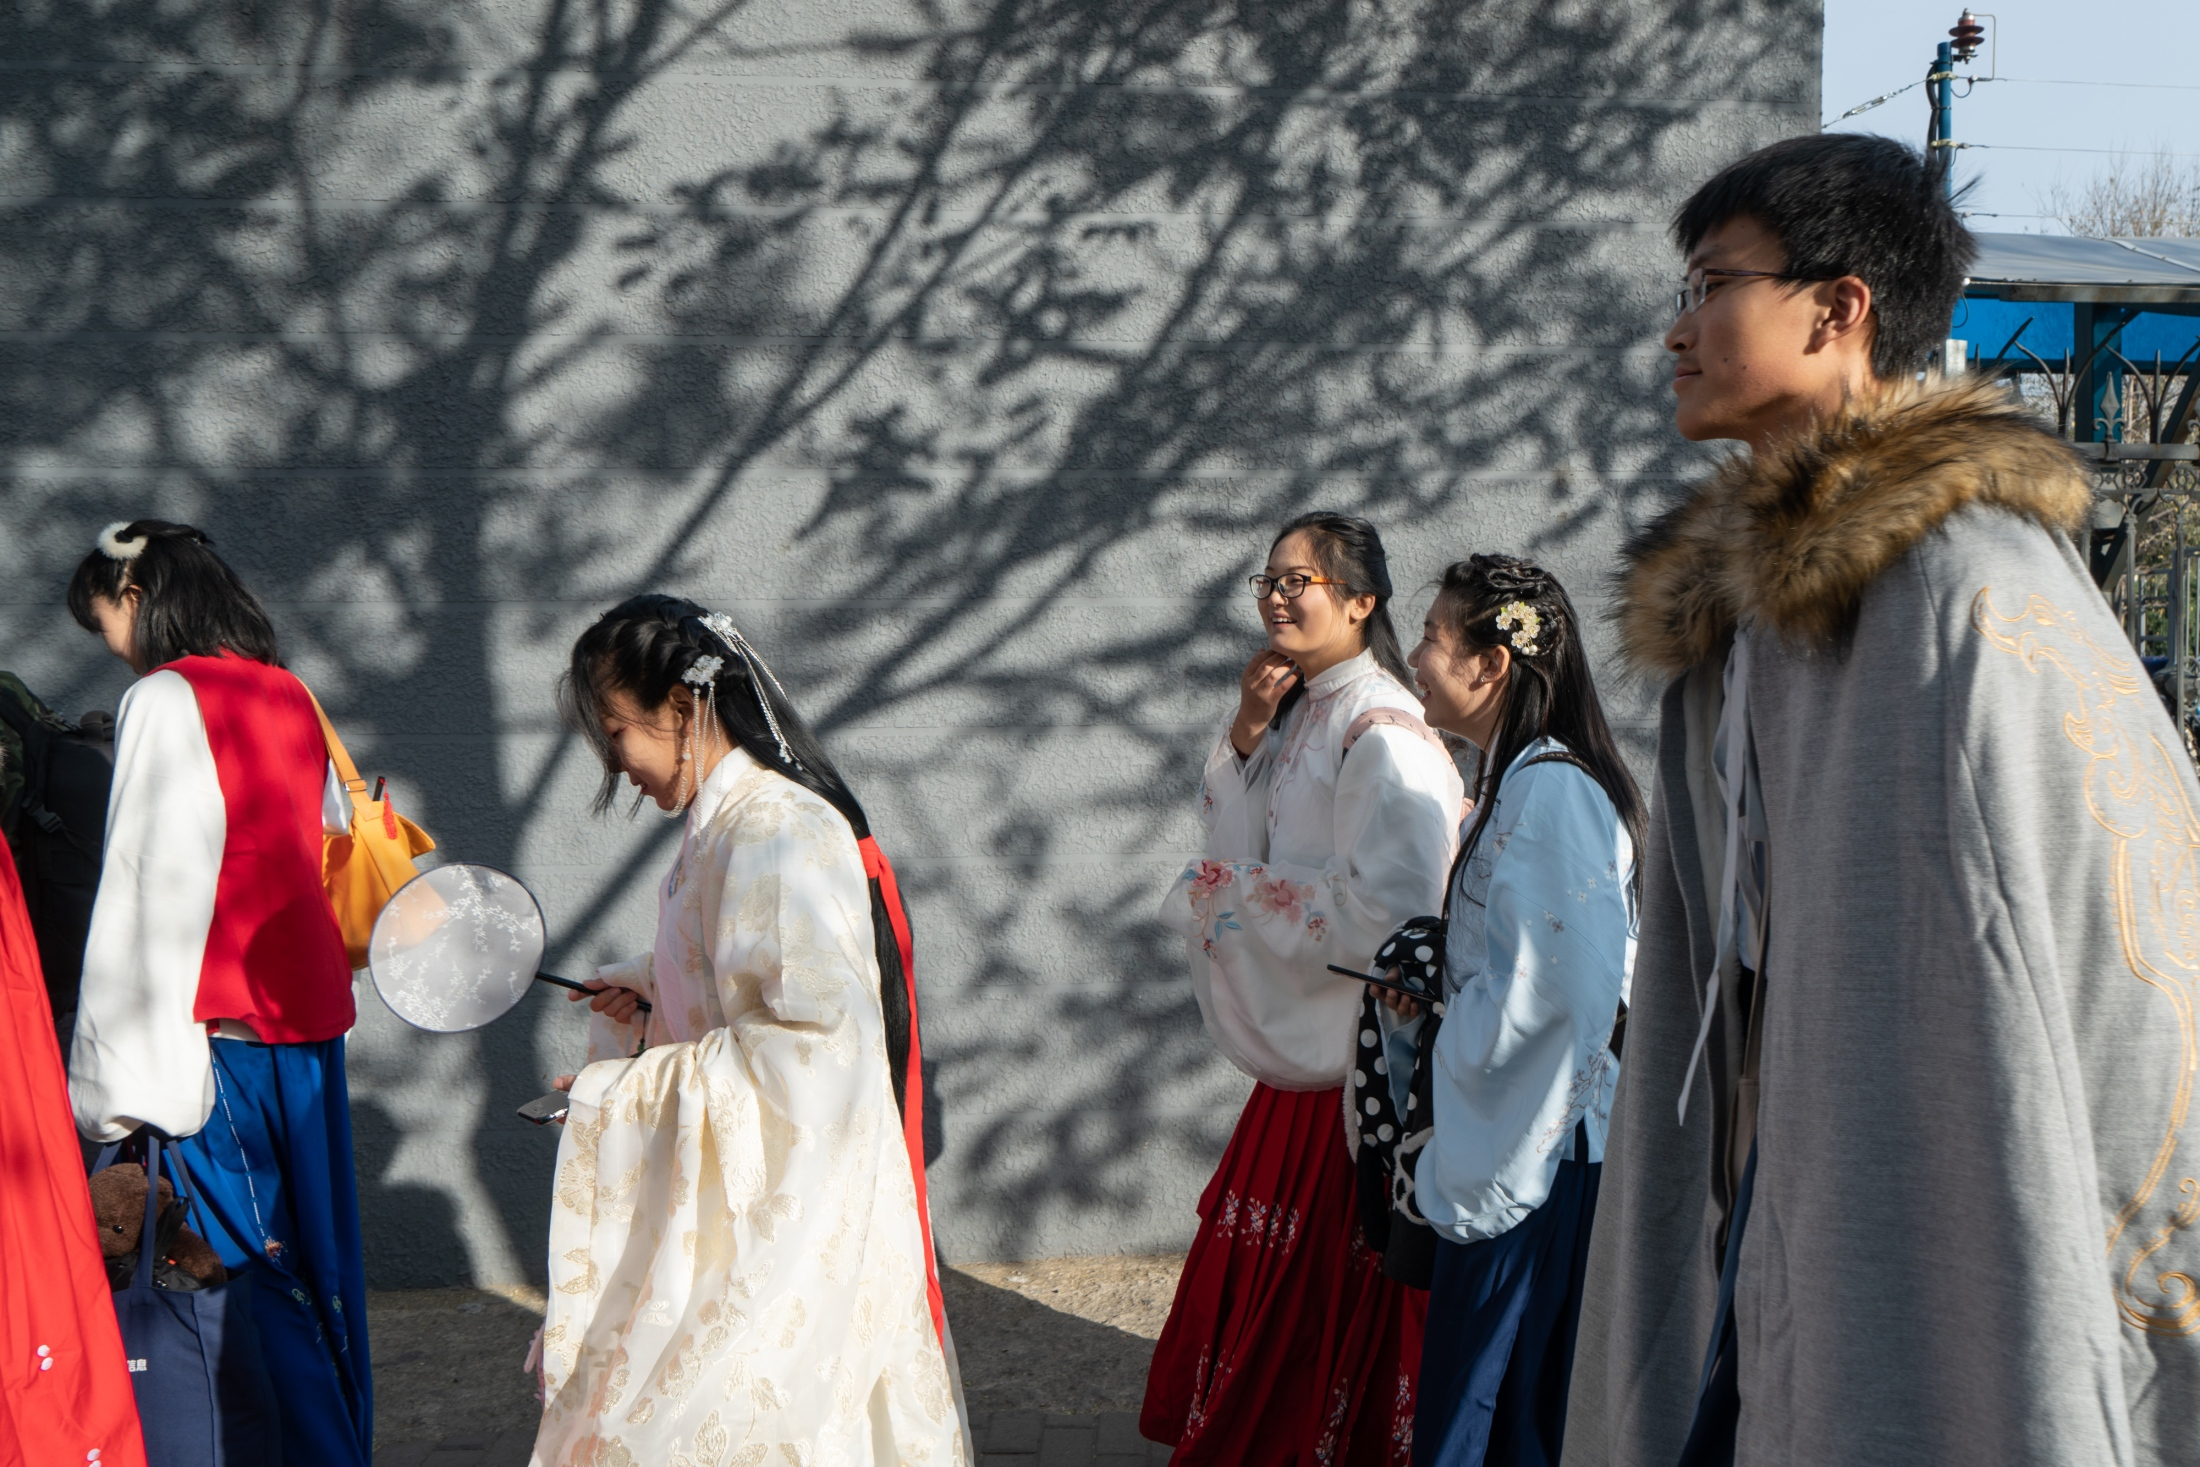 A group of Hanfu devotees walk in the streets of Beijing wearing Hanfu to promote the traditional clothes, November 2018.